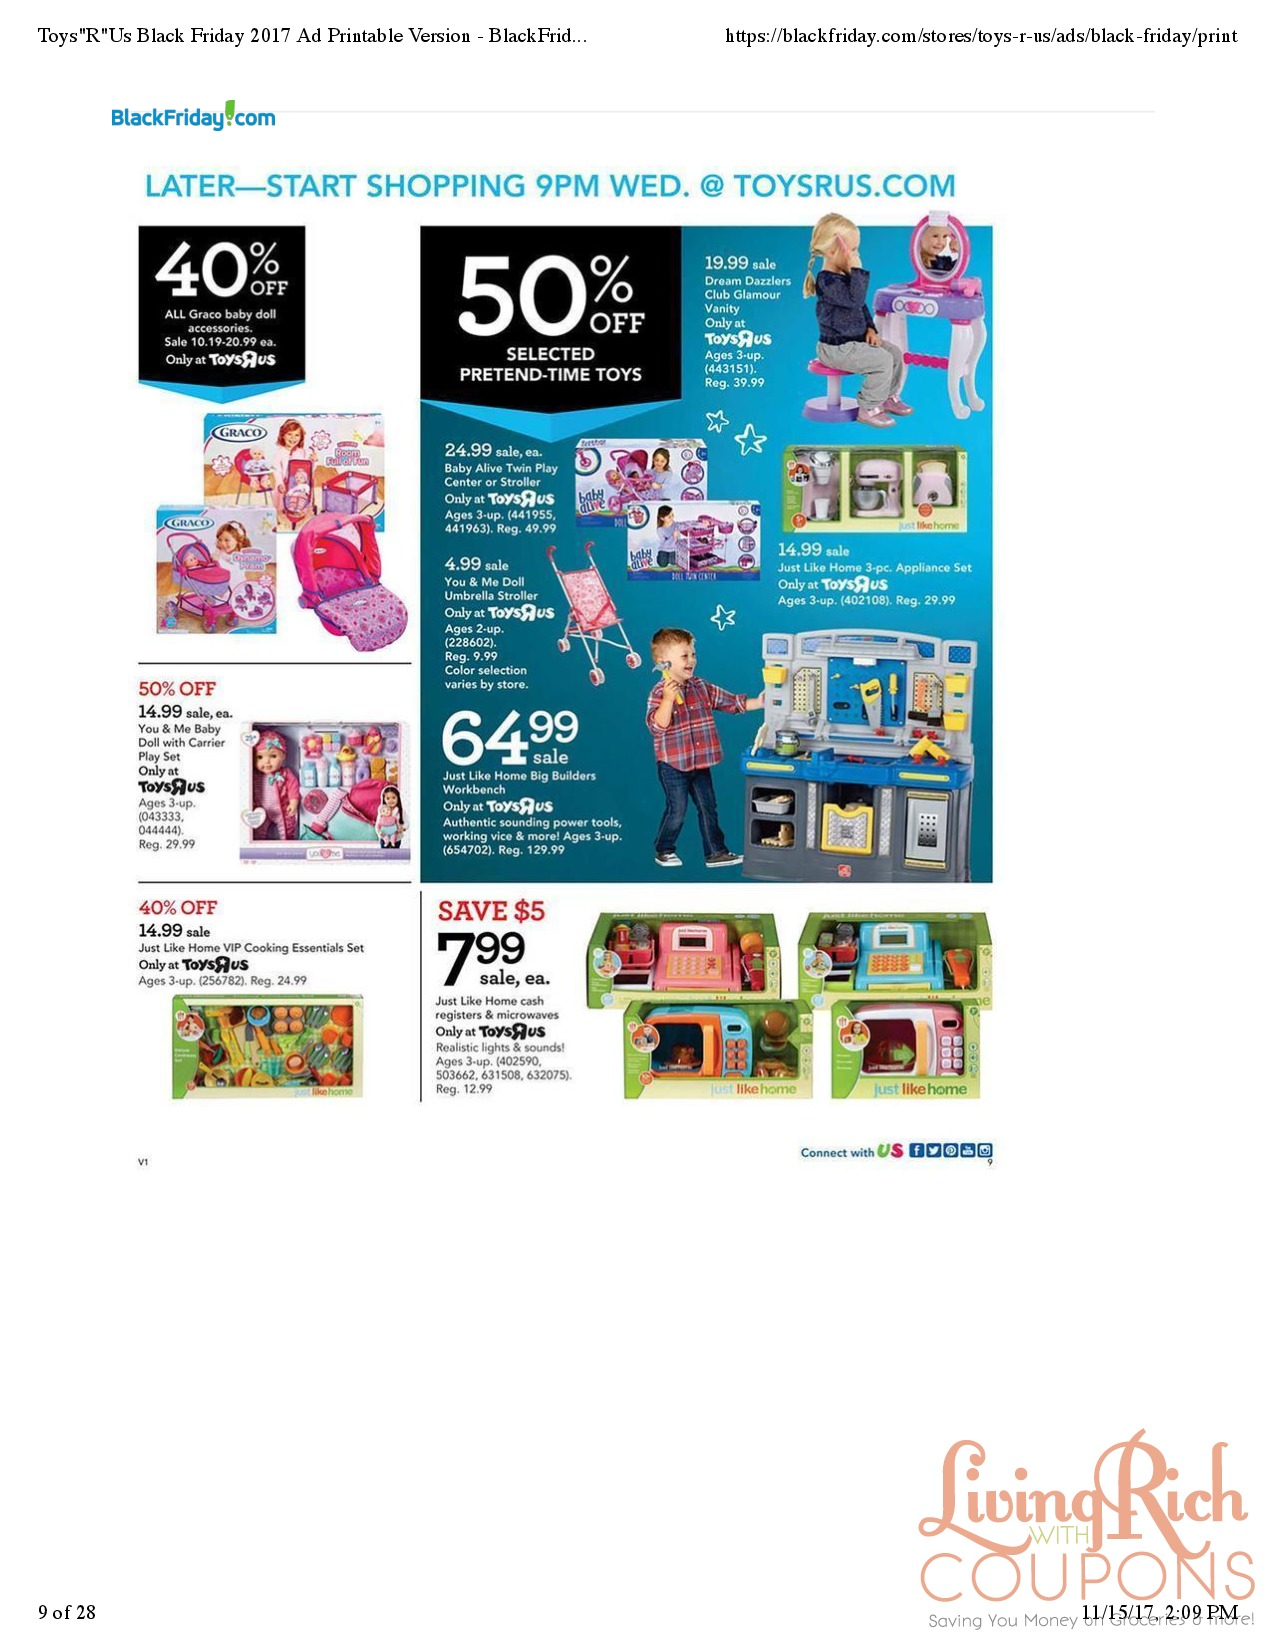 Toys R Us Black Friday Ad, Hours & Deals -Living Rich With Coupons®